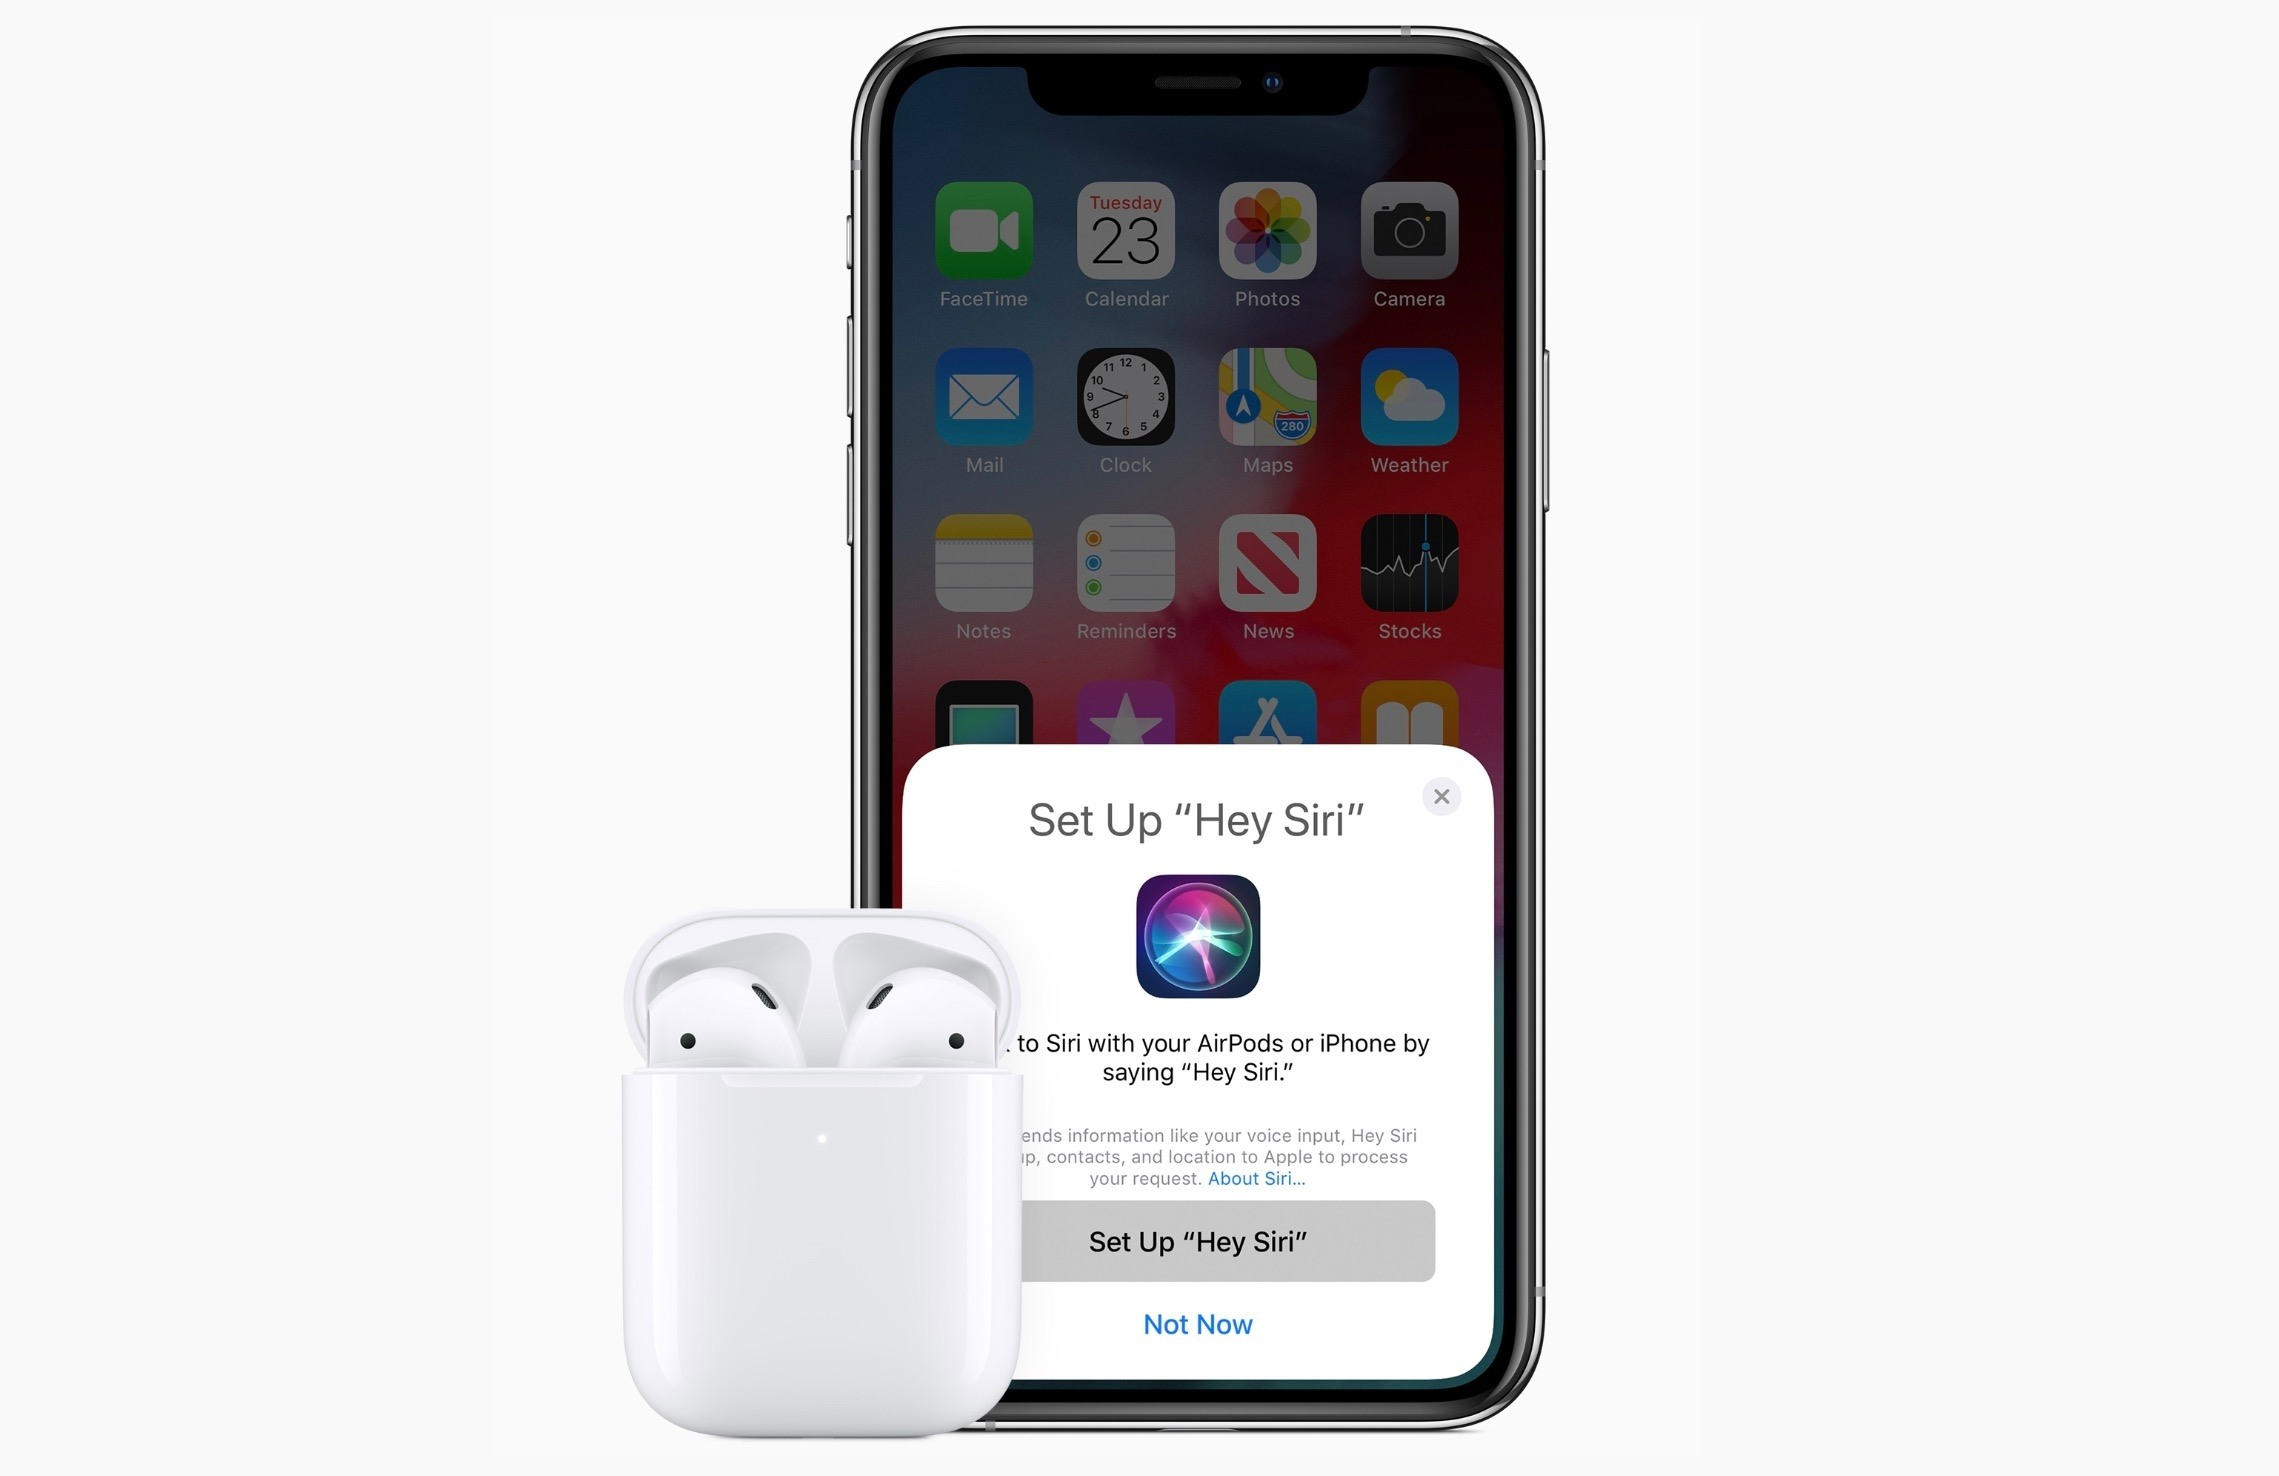 Apple debuts new AirPods with more talk time and wireless charging